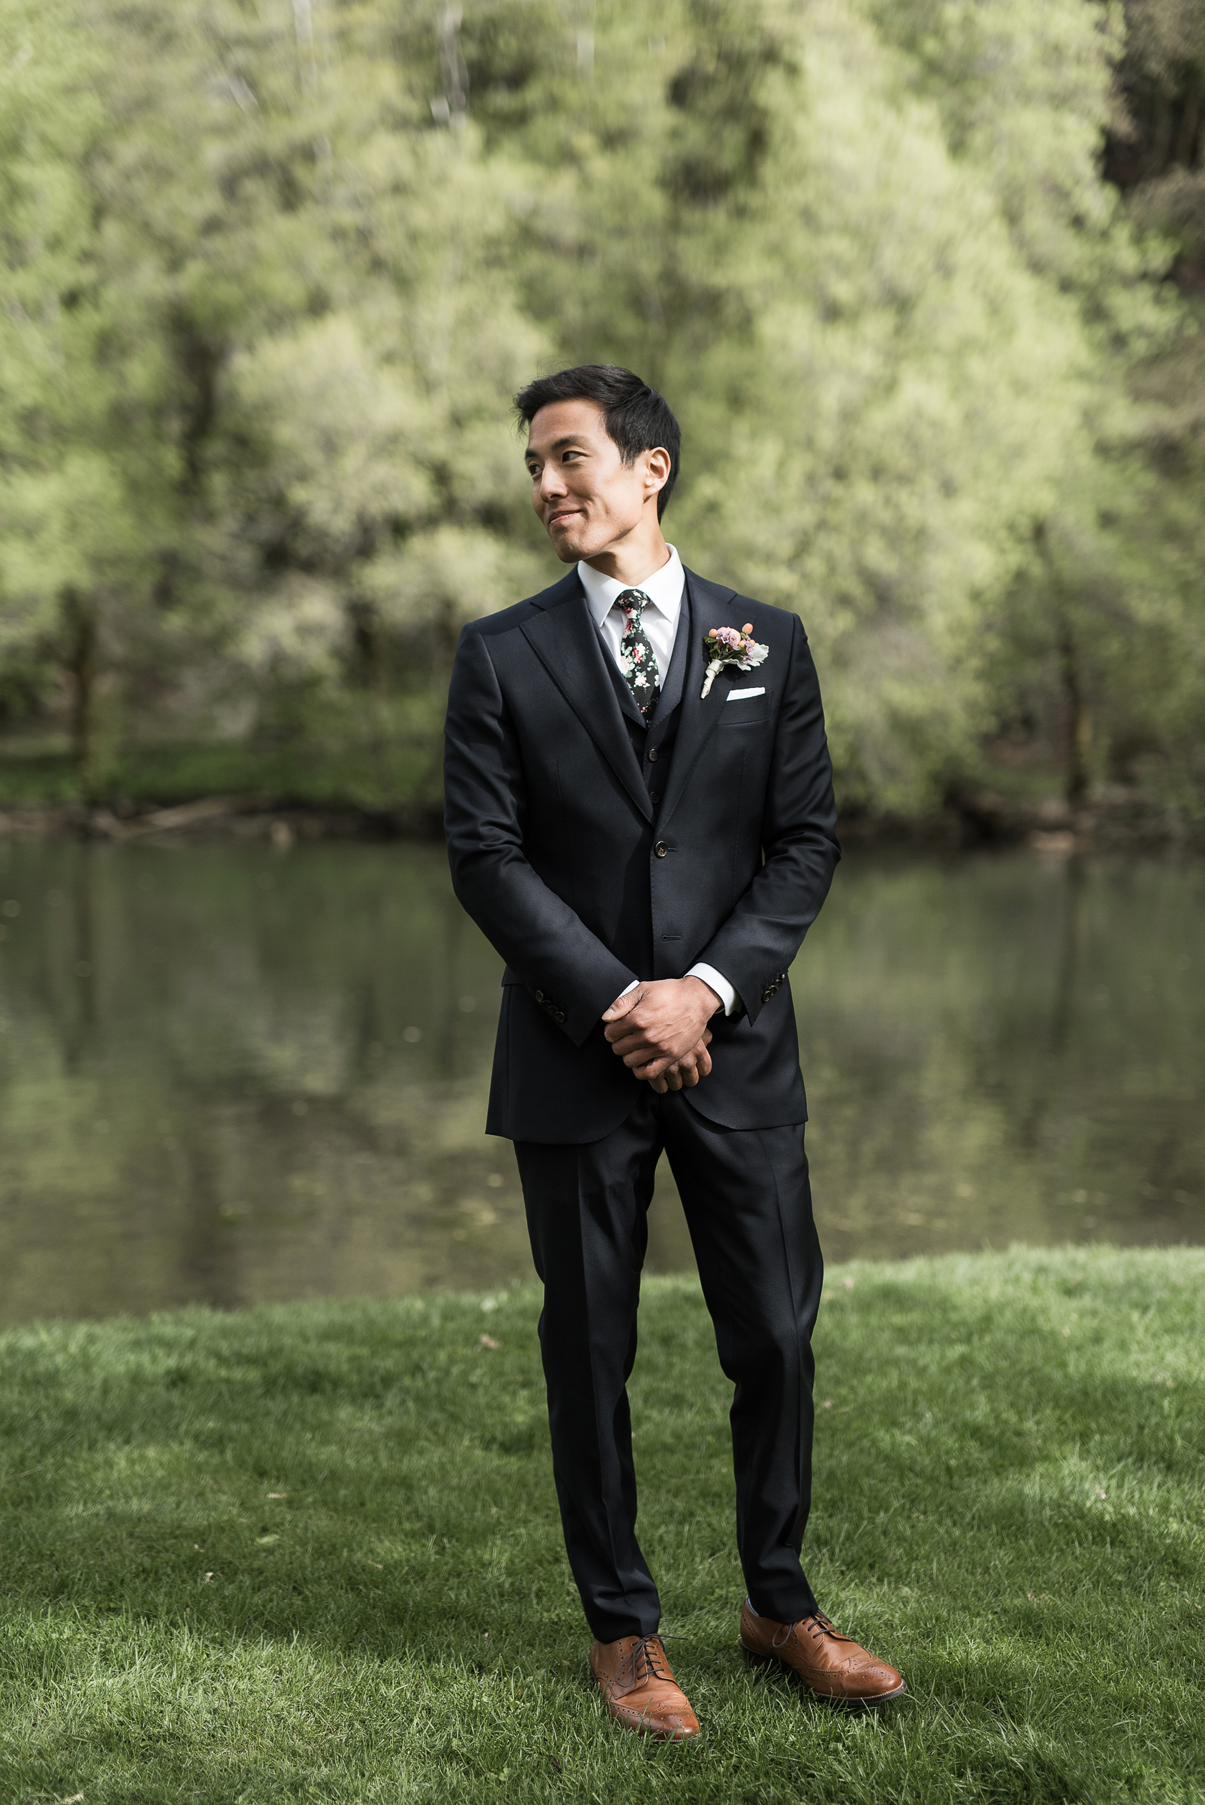 groom's reaction during the wedding day first look